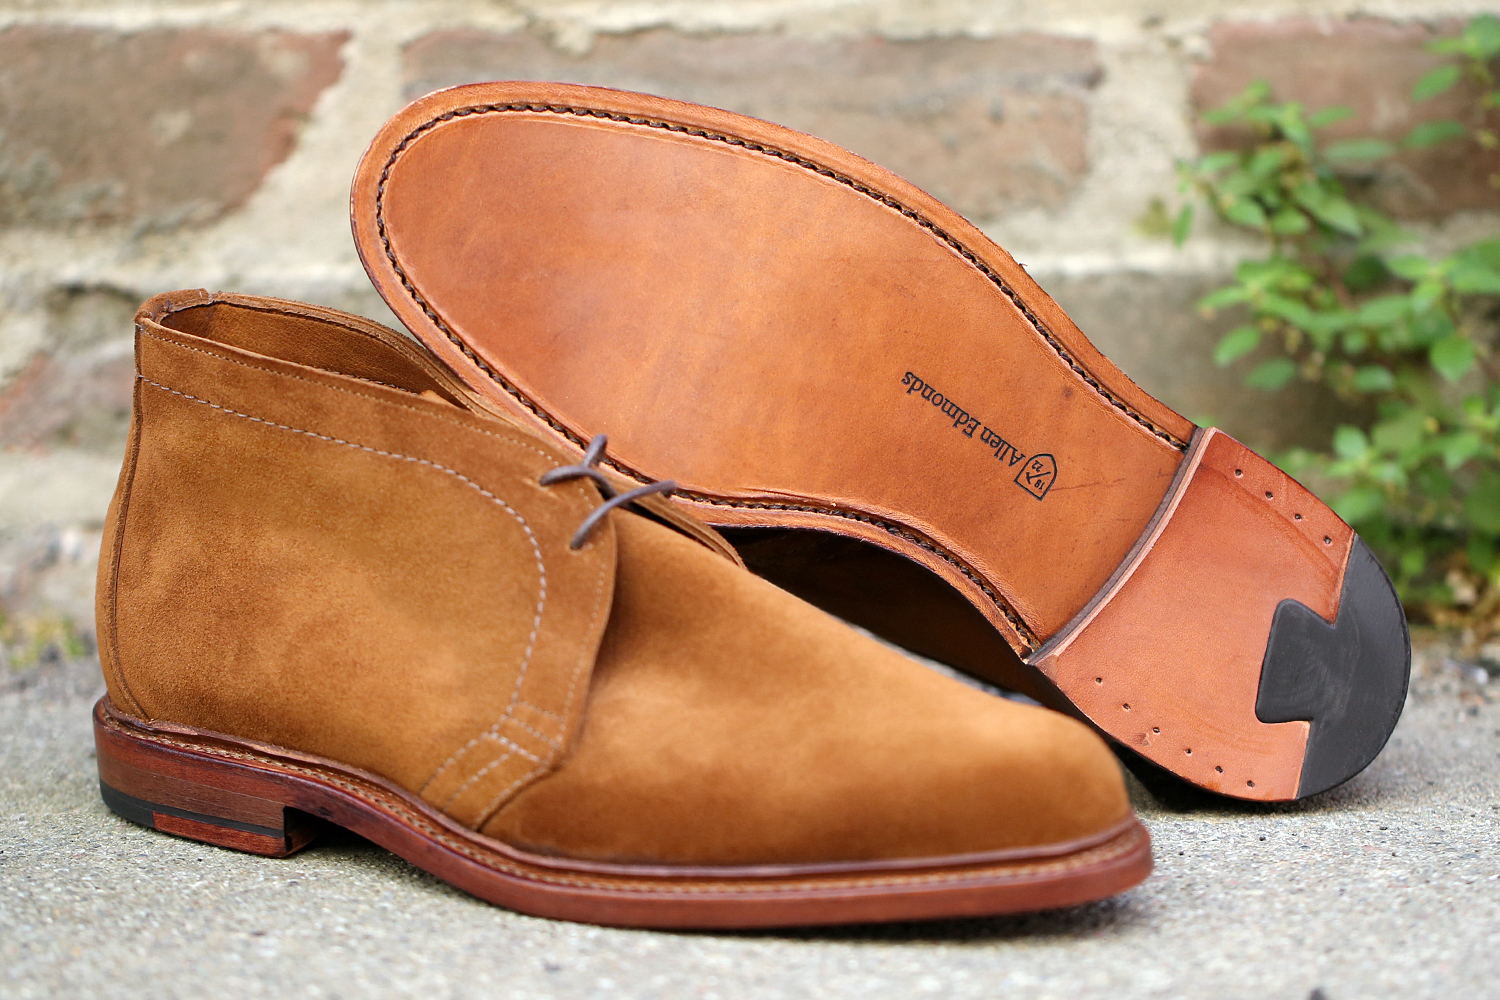 massdrop styleforum allen edmonds unlined suede chukka boot